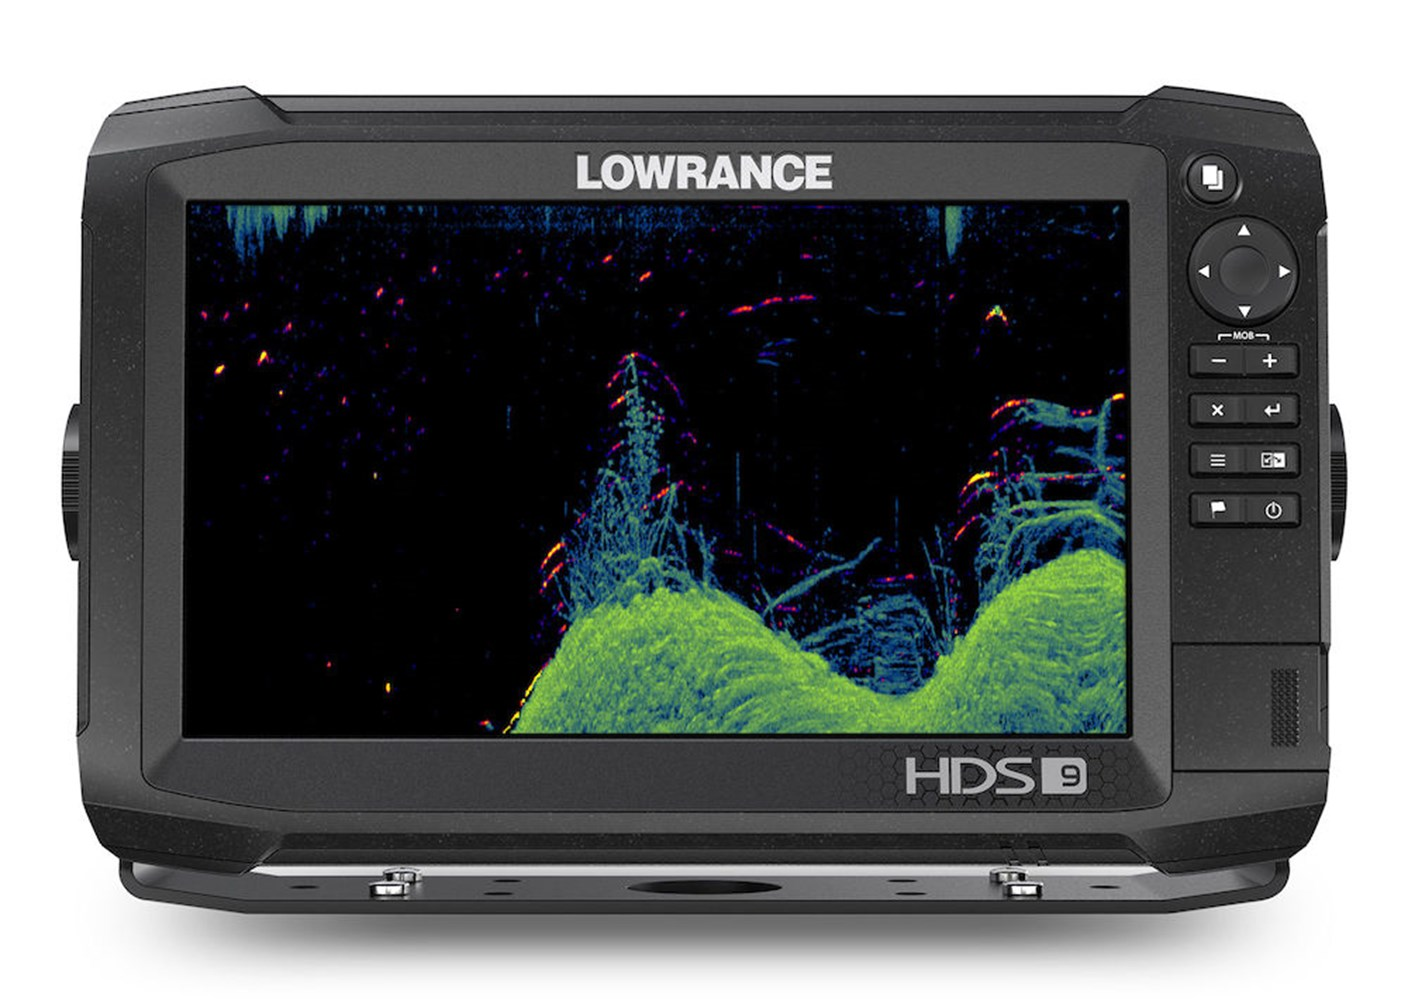 Lowrance Hds Carbon 9 Fishfinder Chartplotter Motorguide 600 Series Trolling Motor 1998 Up Wire Diagram Previous